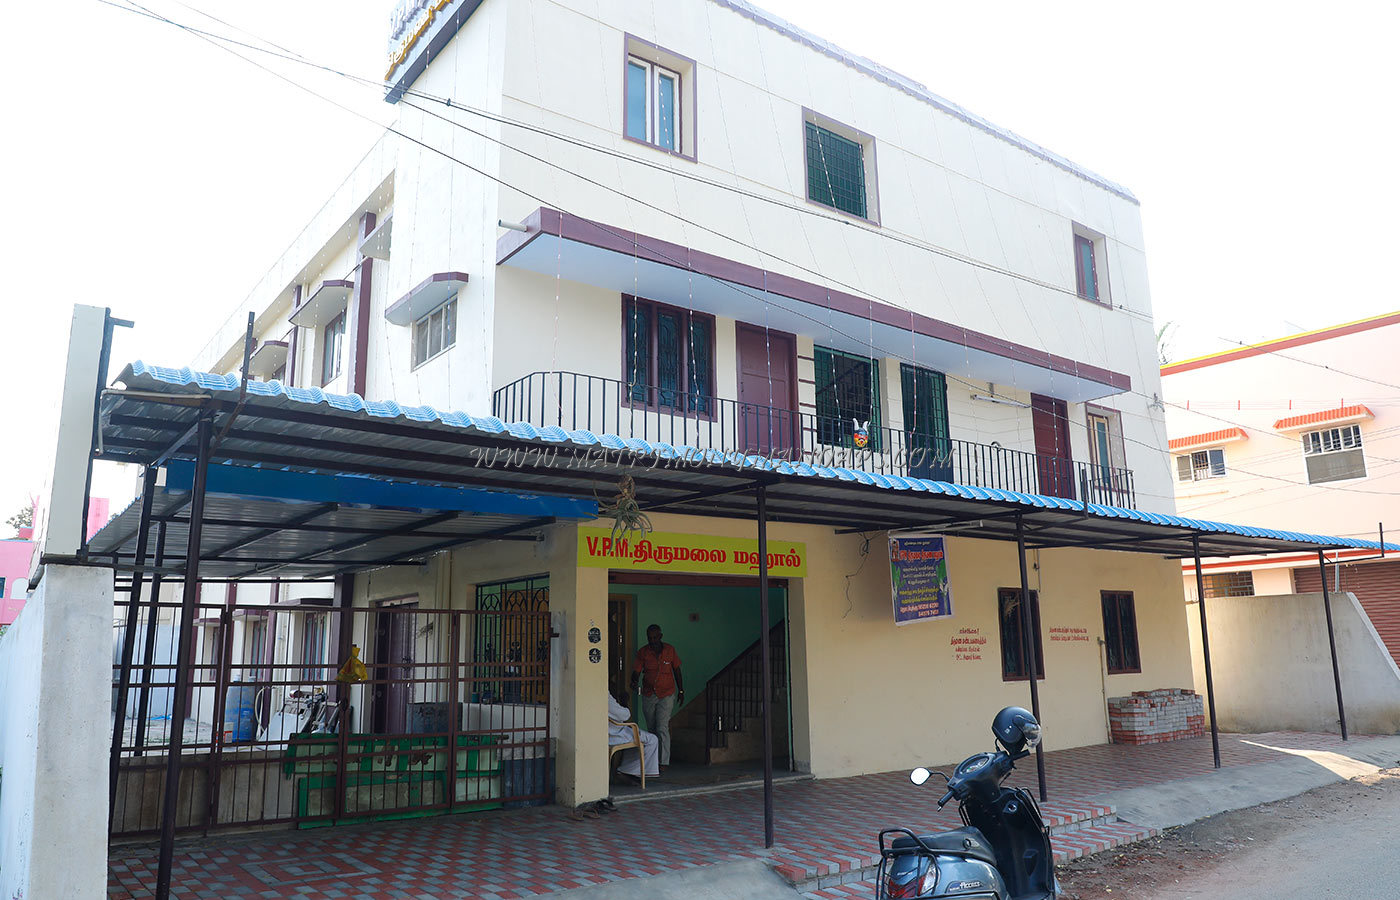 Find More Kalyana Mandapams in K Pudur